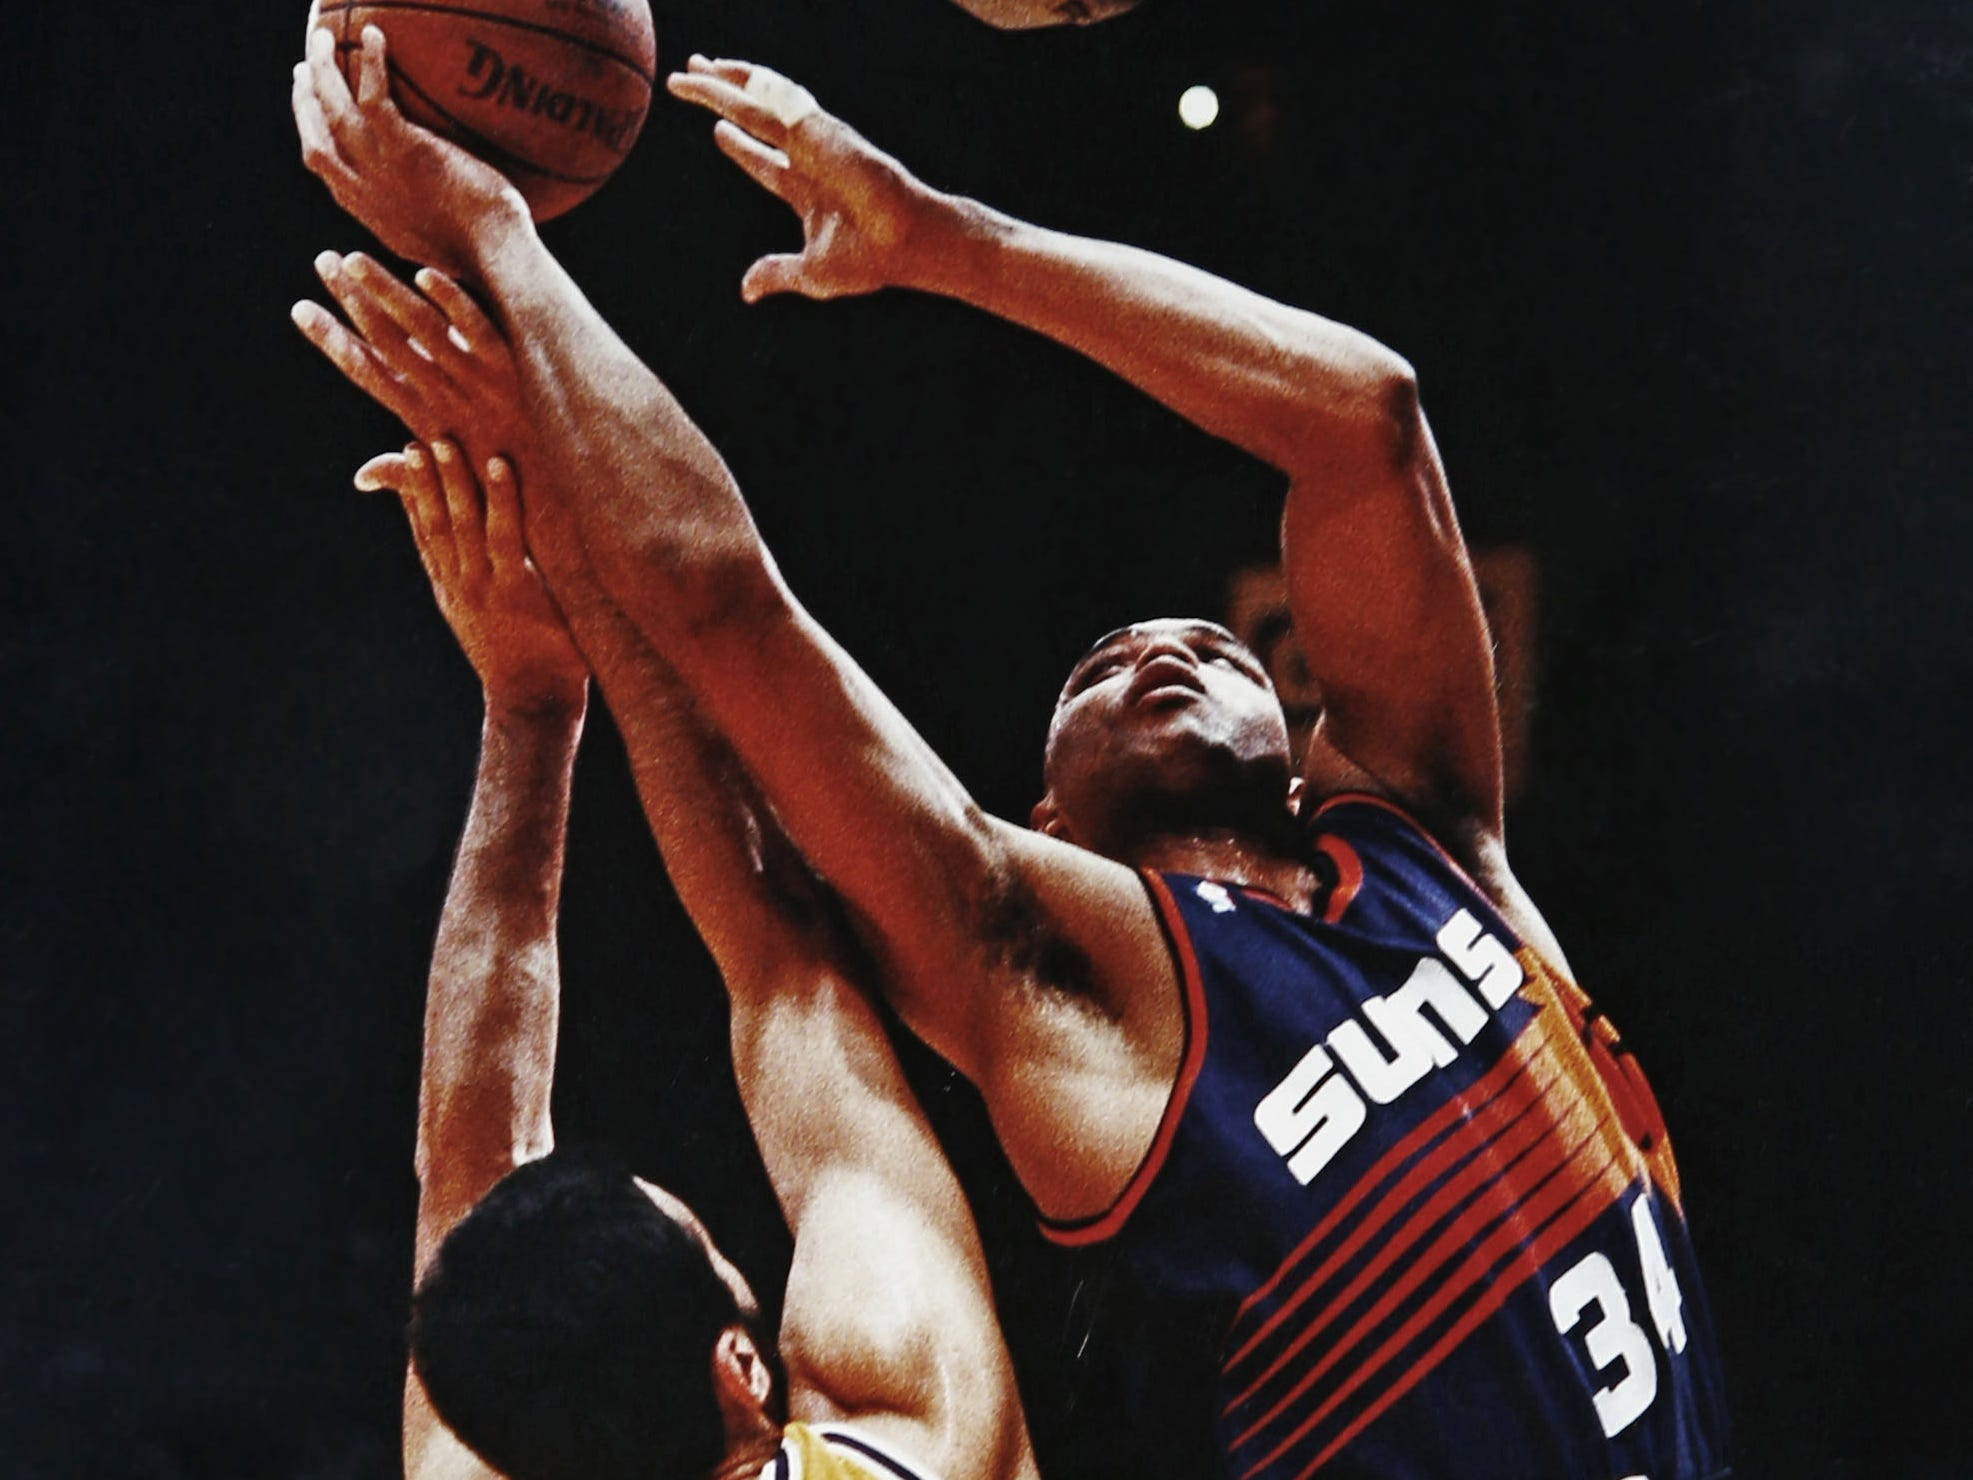 1992-93 | Suns MVP: Charles Barkley. Barkley was the leader of a team that was so popular, 300,00 came out for a parade after they lost in the NBA Finals to the hated Bulls.